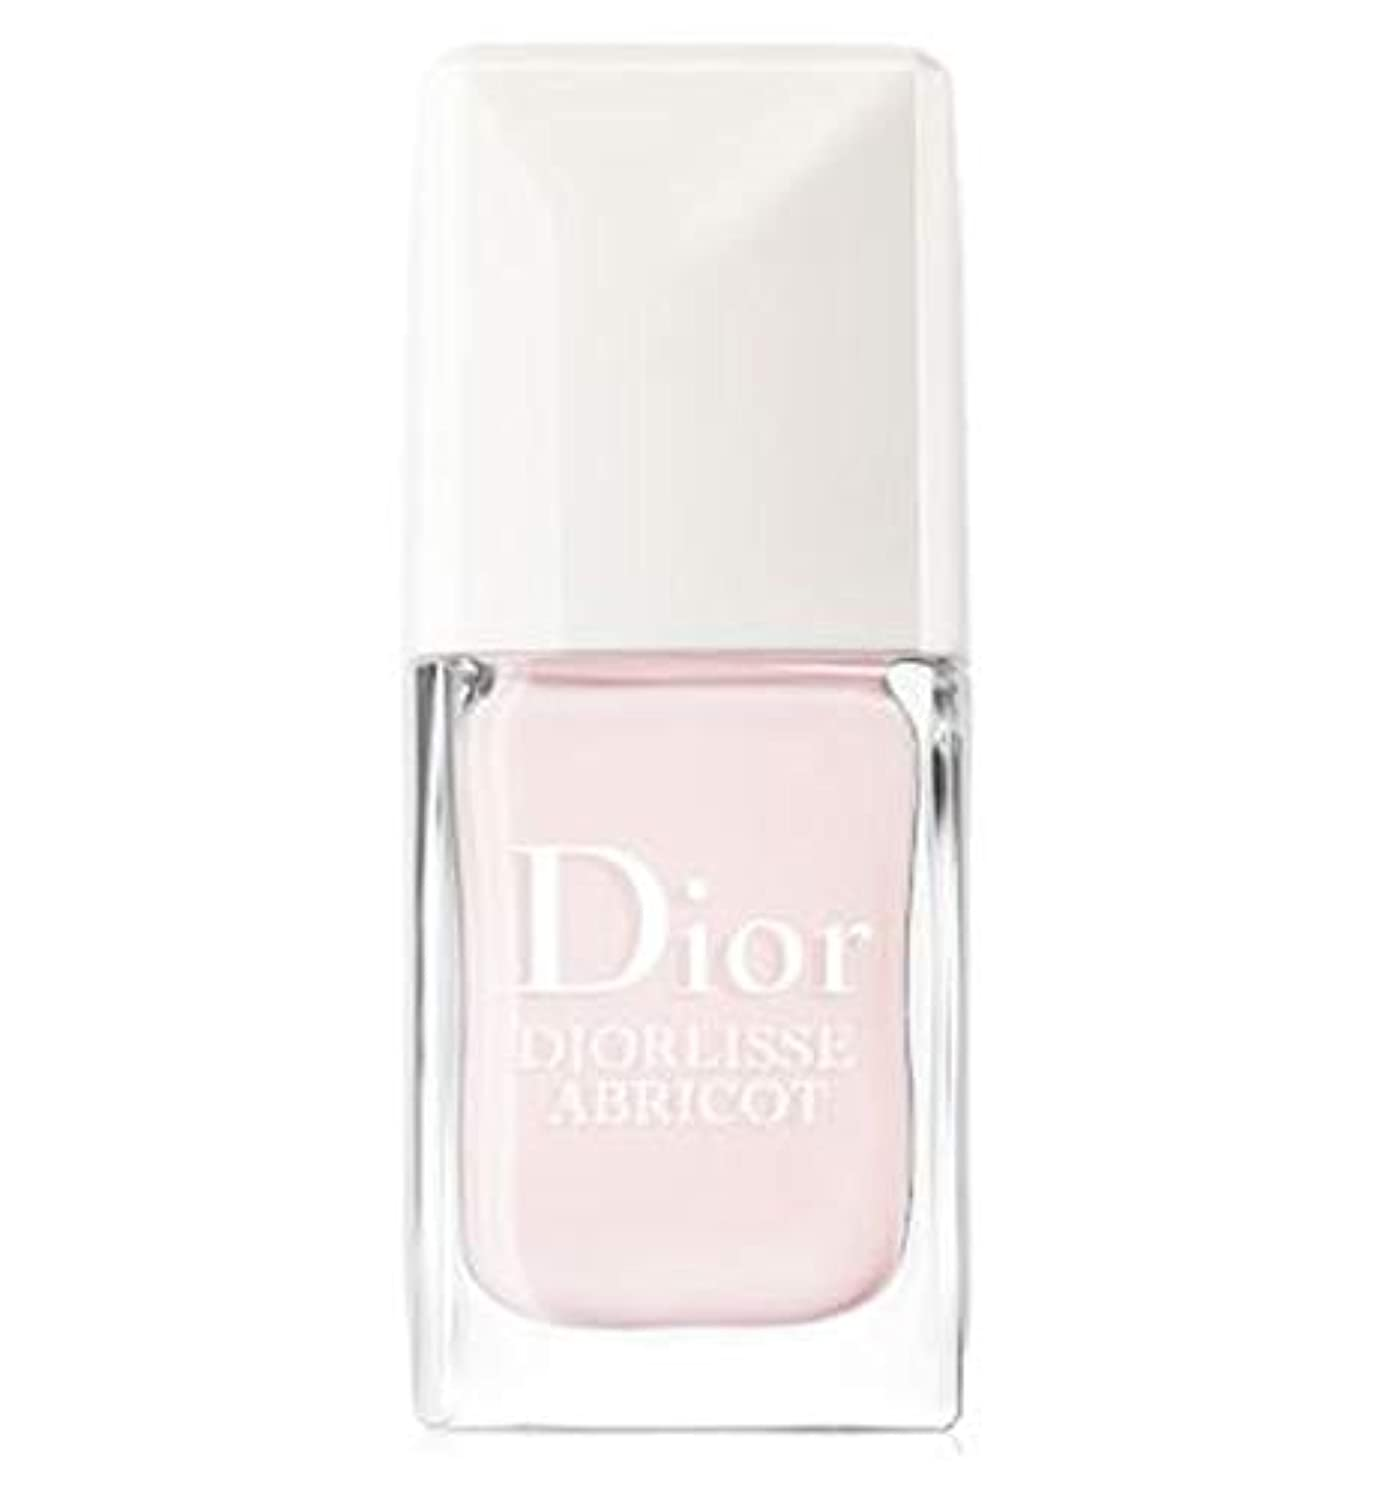 [Dior ] ピンクの花びらの10ミリリットルで完成ネイルケアを平滑化Abricot Diorlisse - Diorlisse Abricot Smoothing Perfecting Nail Care In Pink...